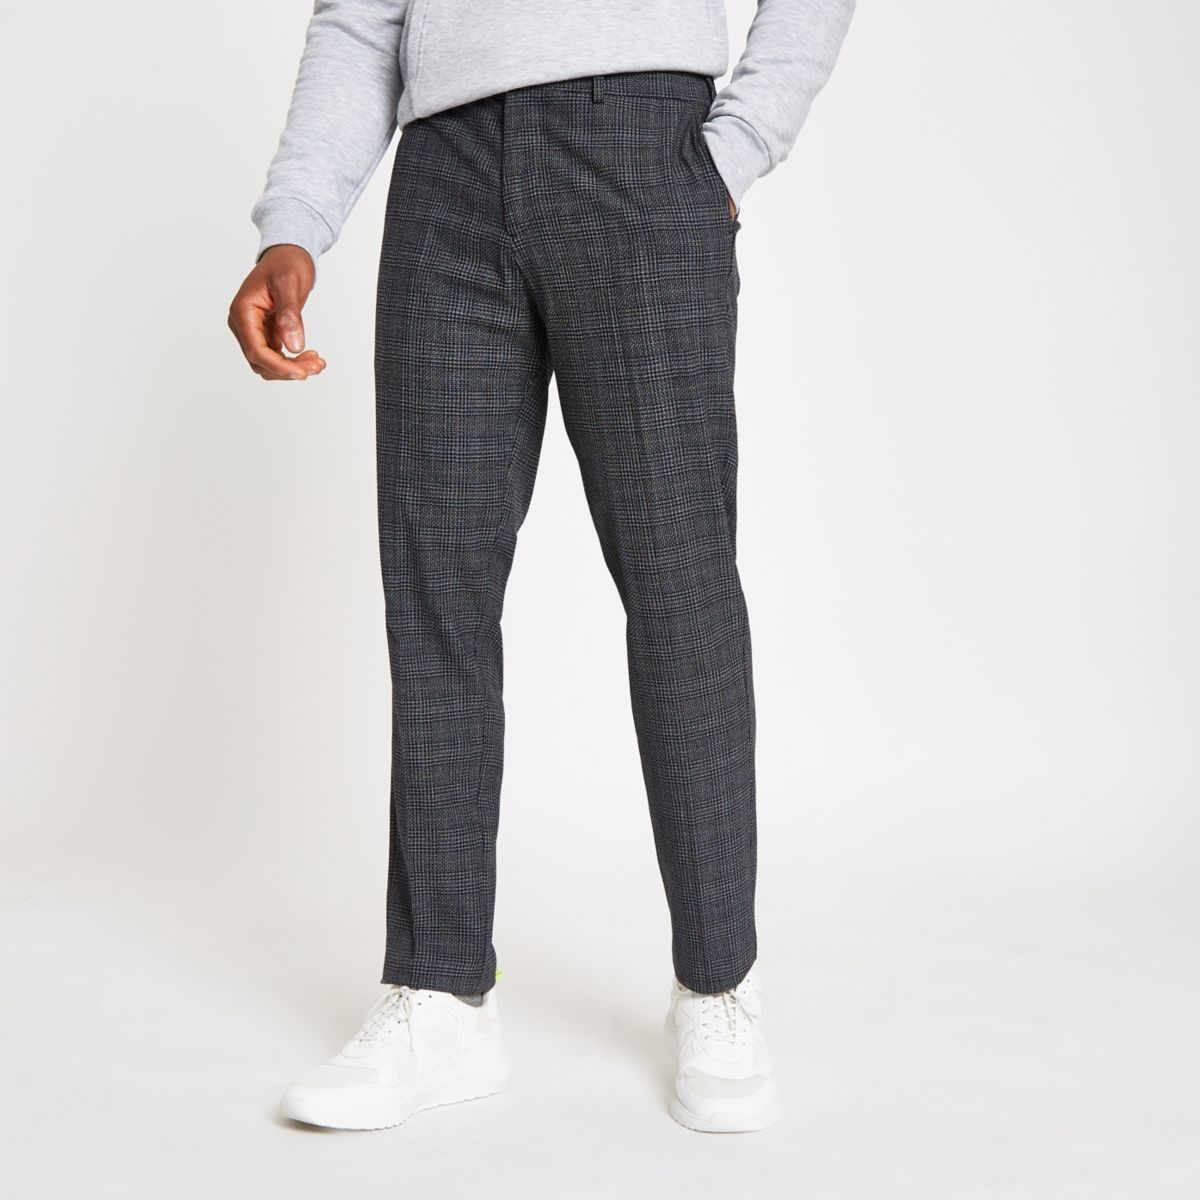 Selected Homme grey check tapered pants